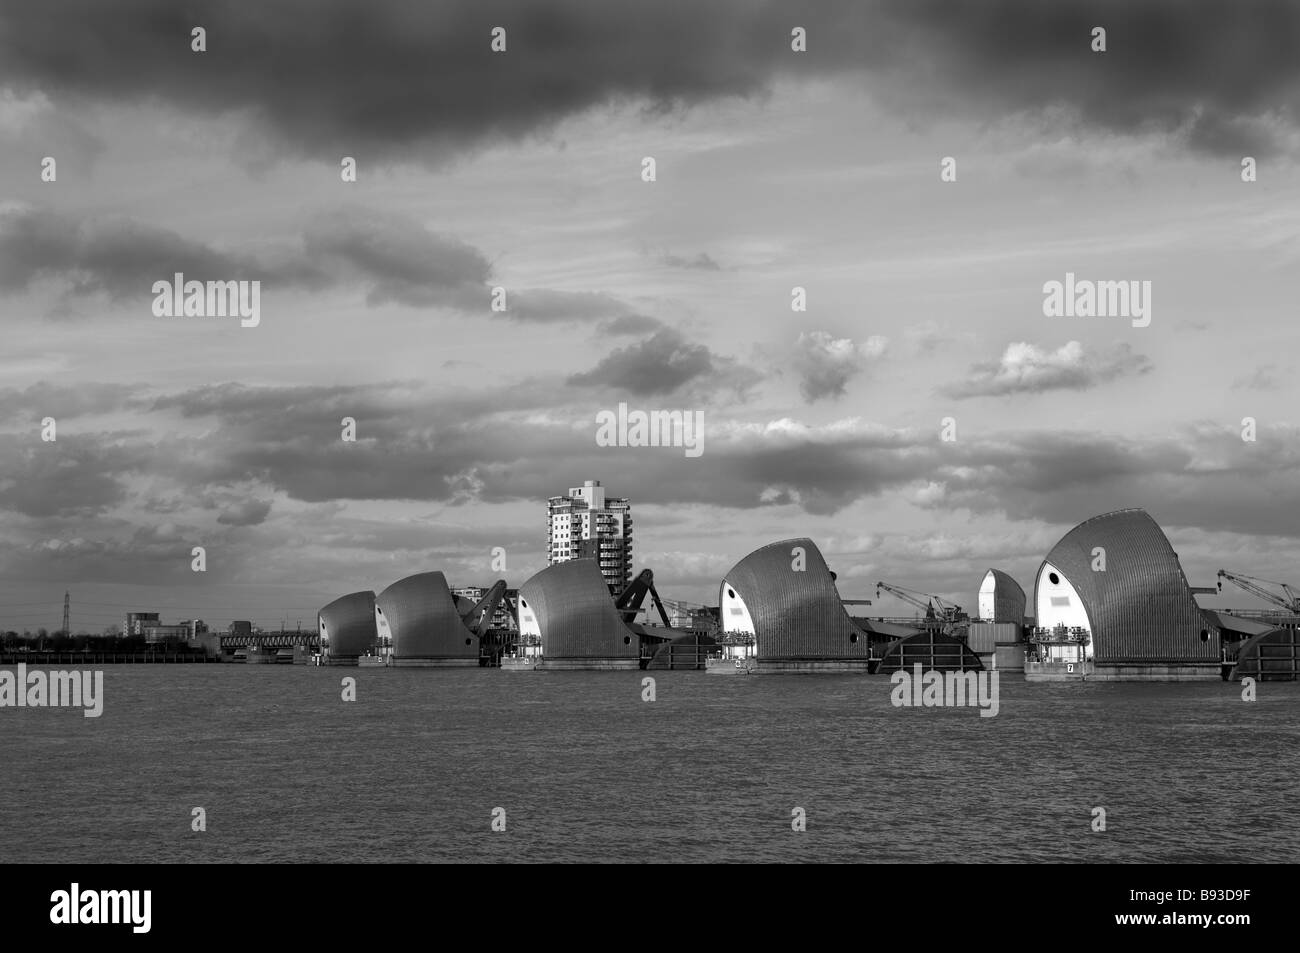 Thames Barrier on the river Thames, black and white image. - Stock Image